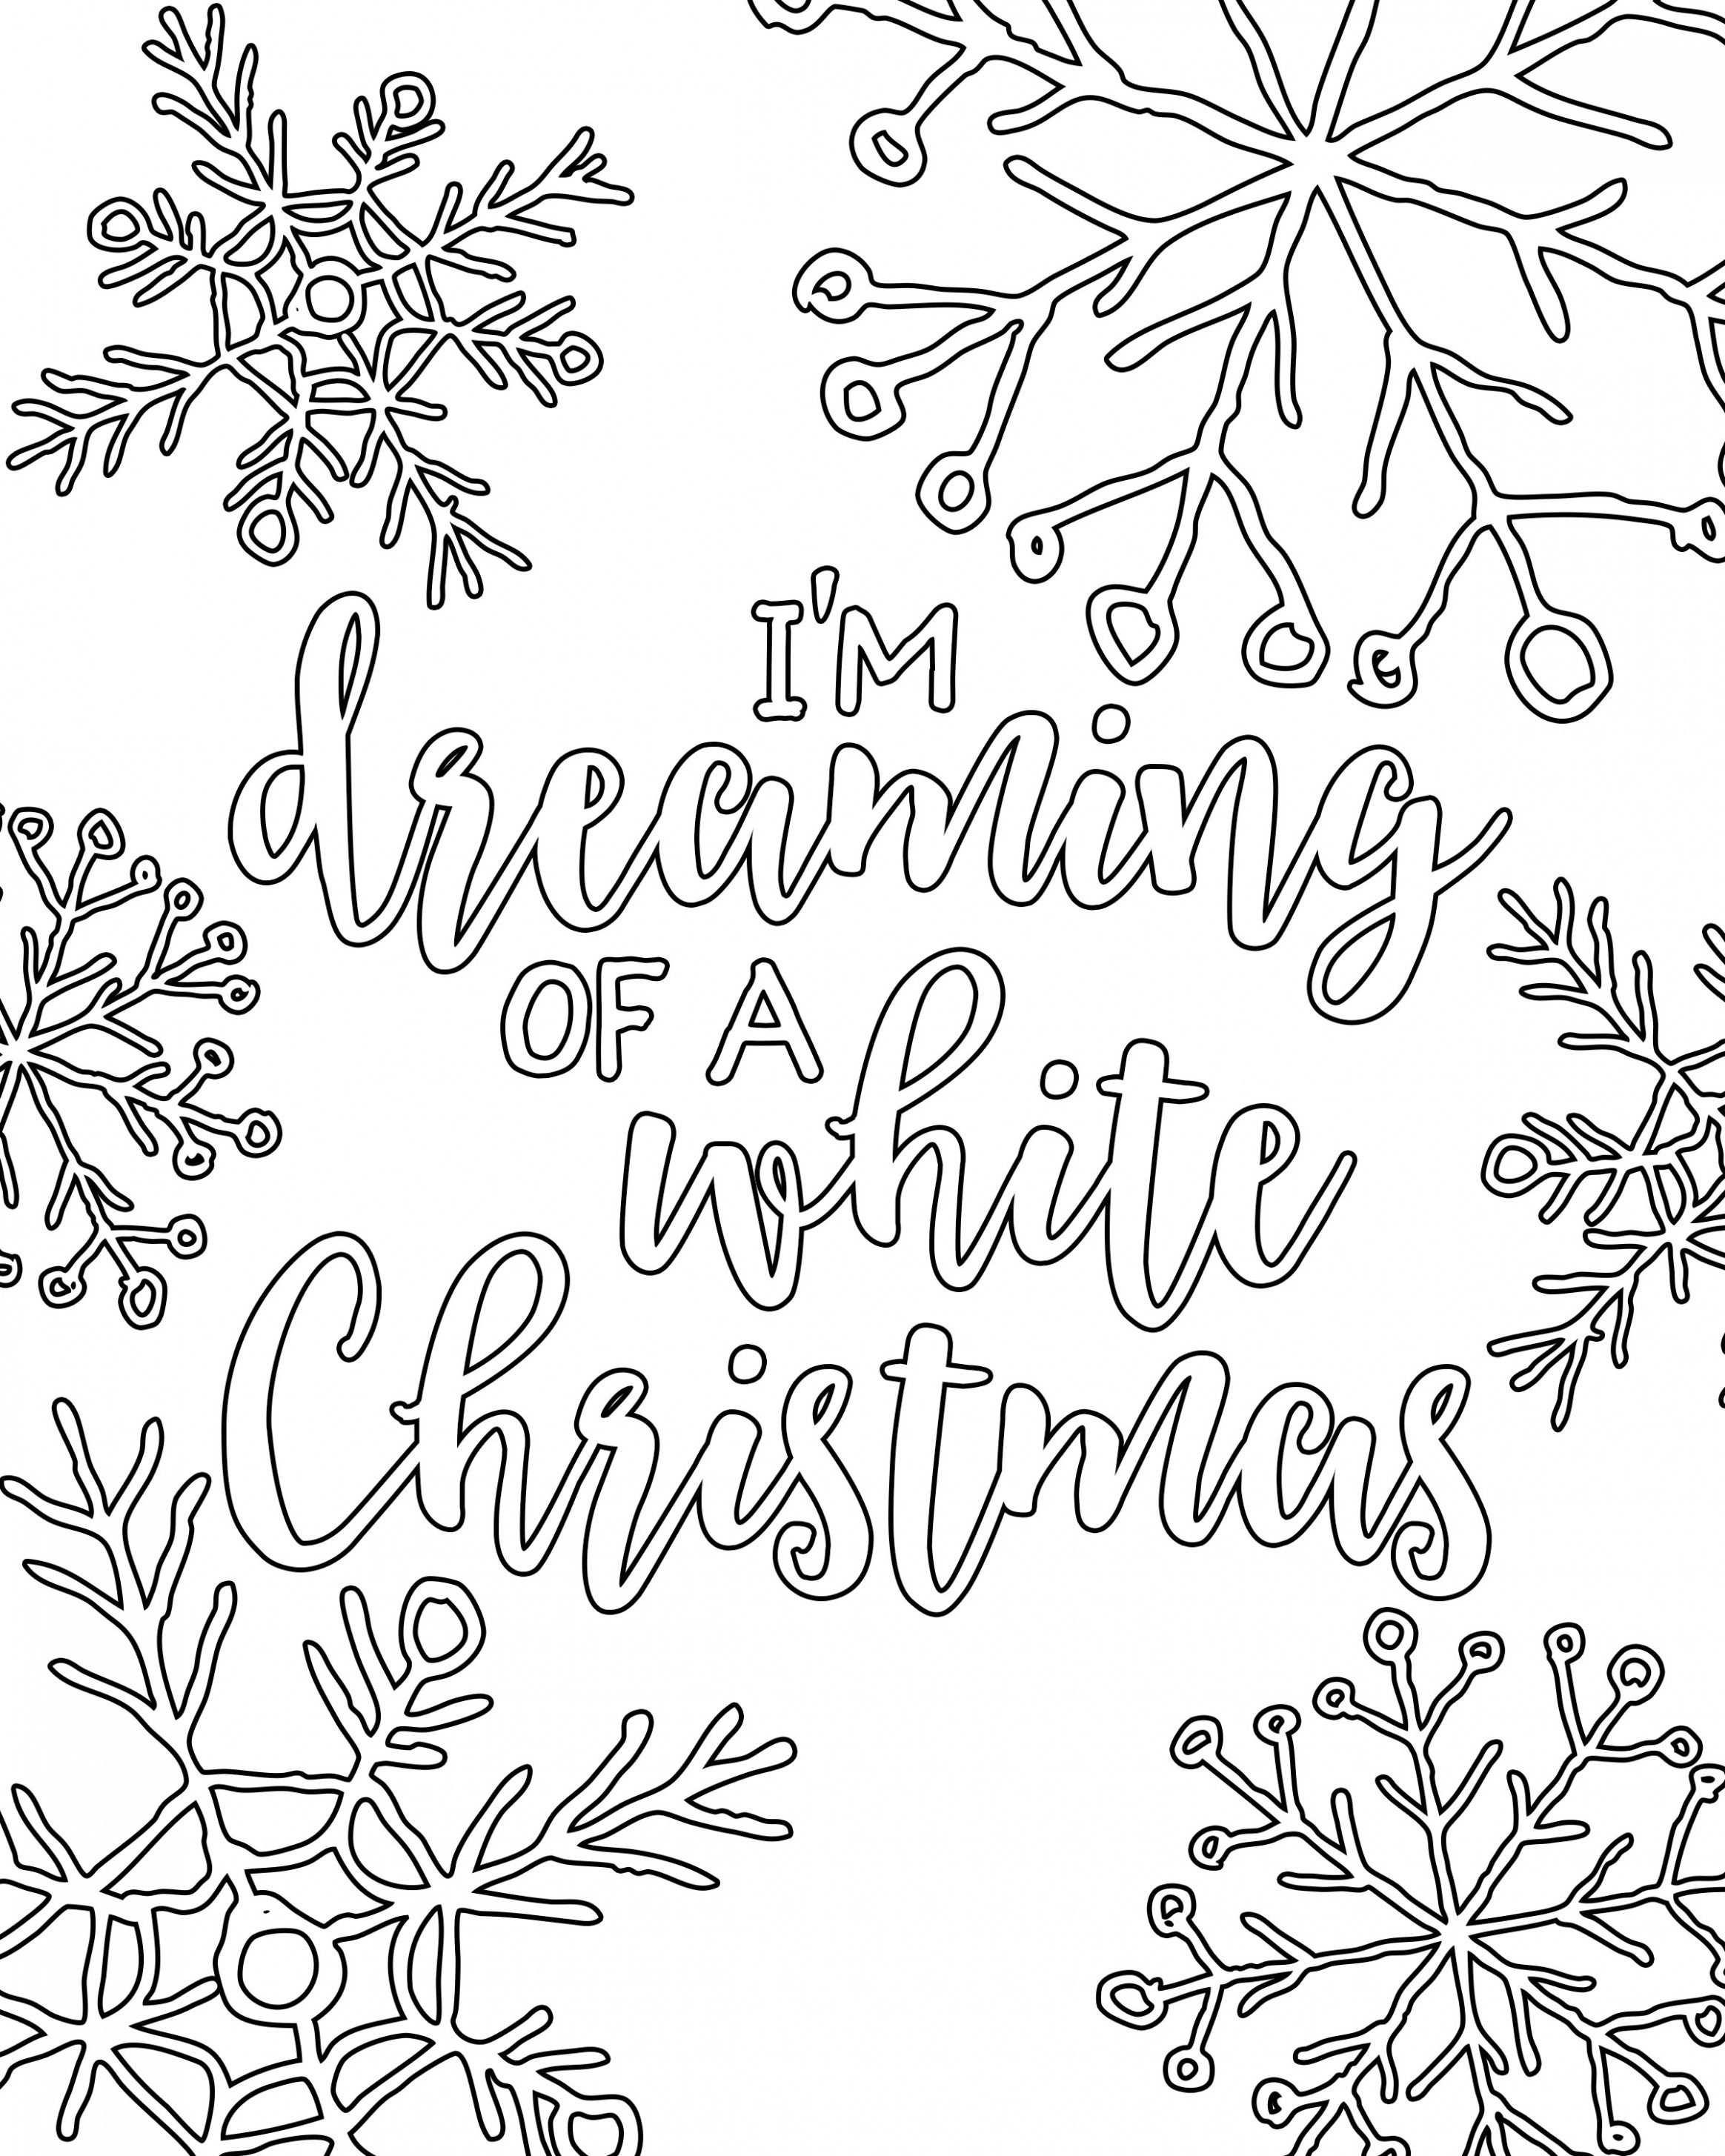 Free Printable White Christmas Adult Coloring Pages | Coloring Pages